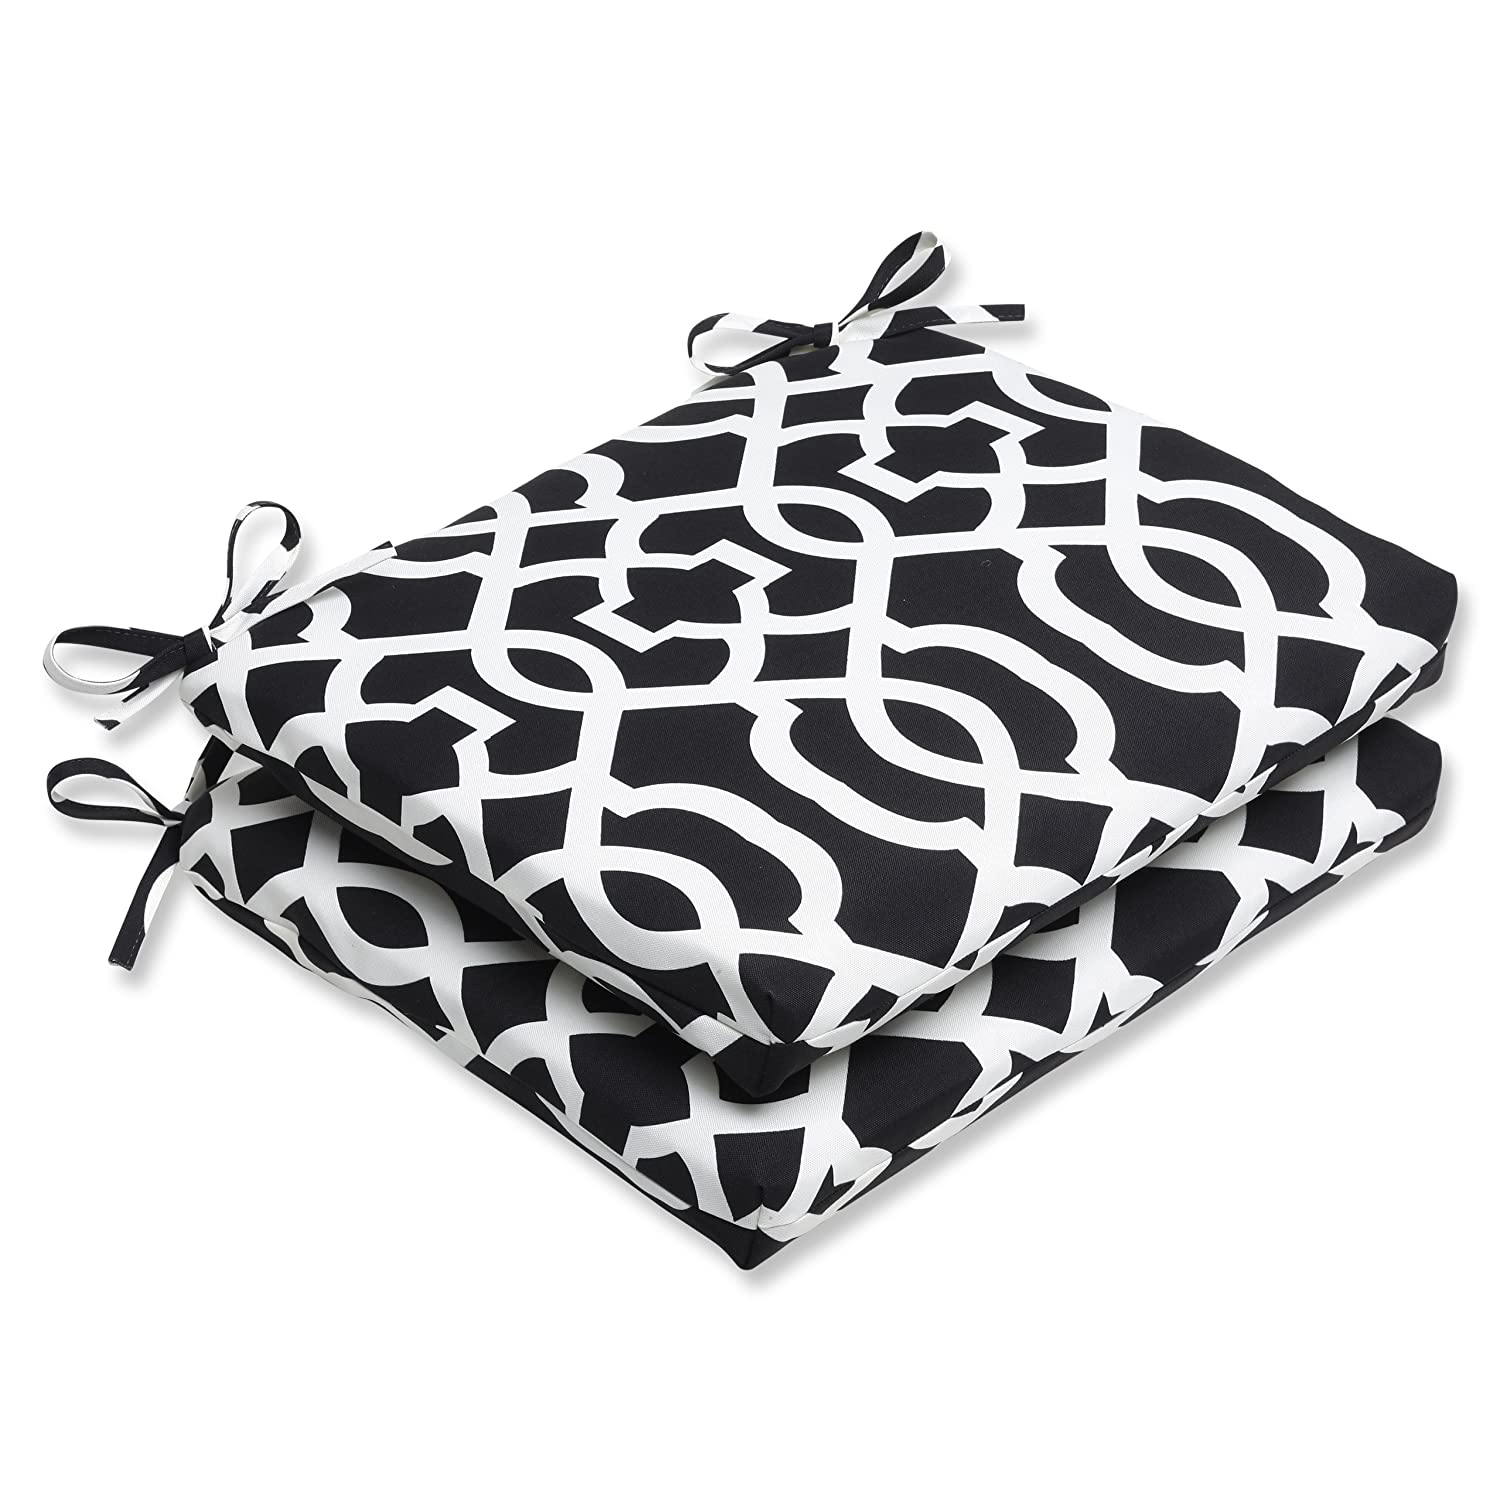 Pillow Perfect Outdoor New Geo Squared Corners Seat Cushion, Black/White, Set of 2